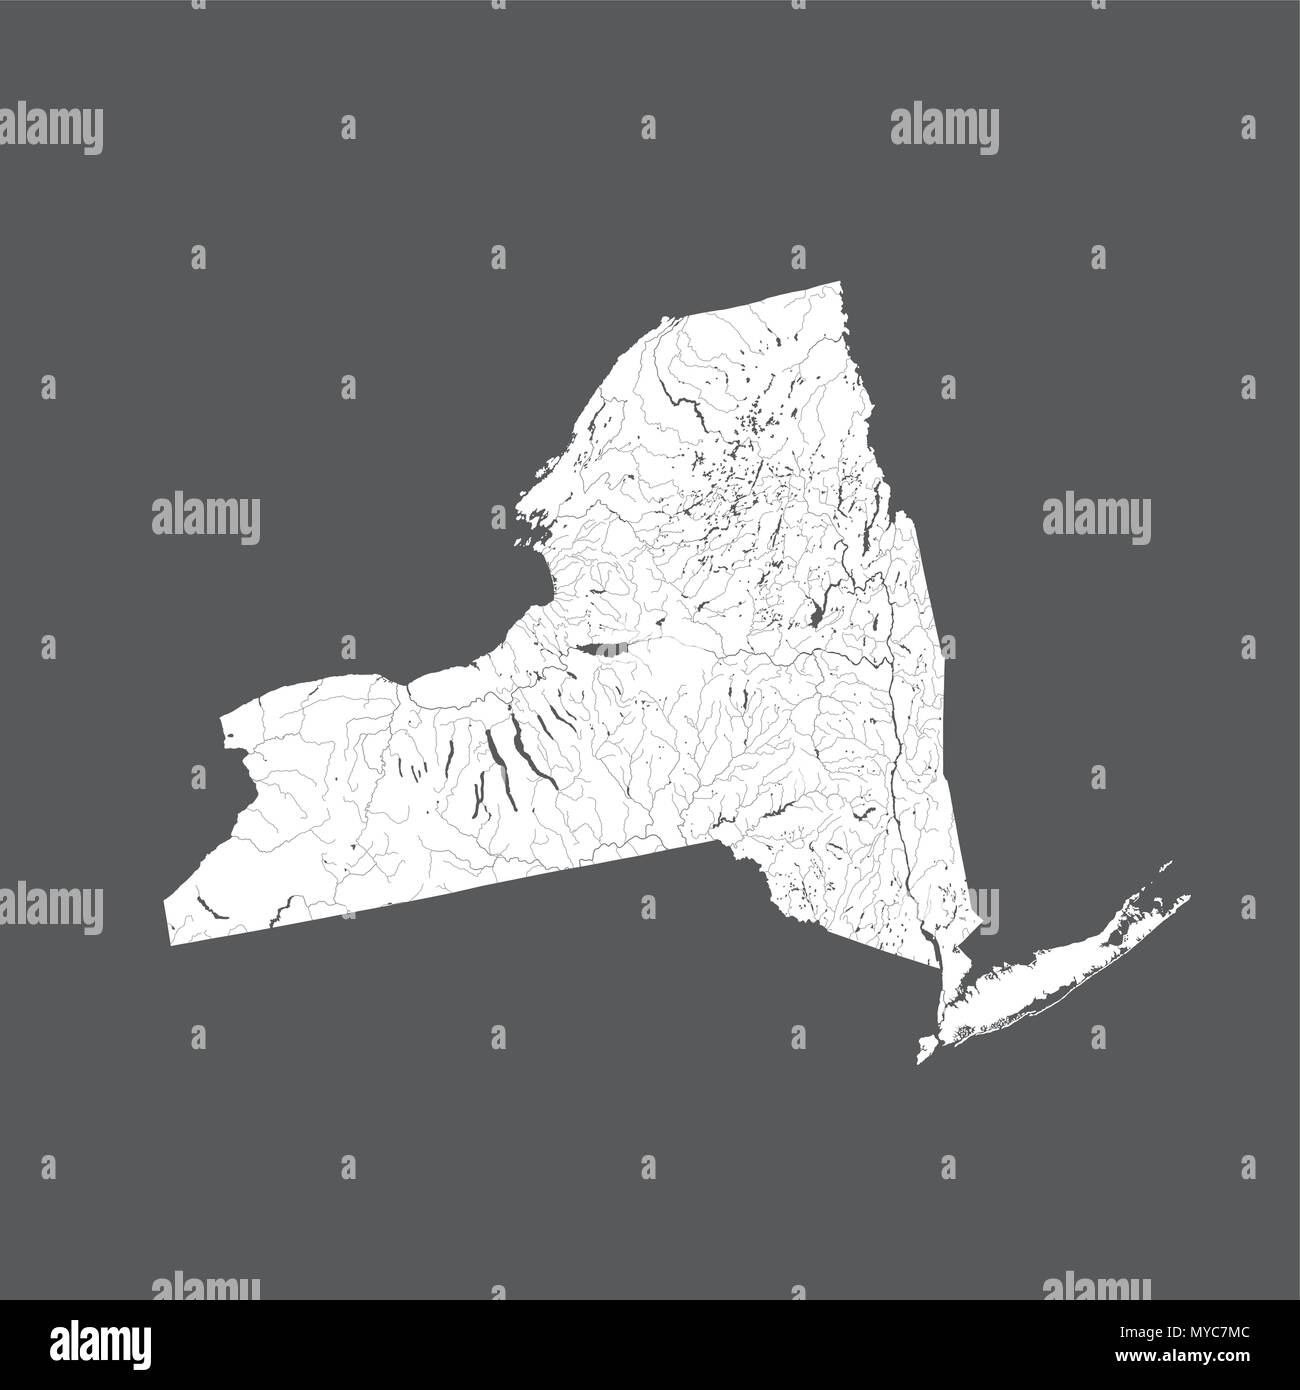 U.S. states - map of New York. Hand made. Rivers and lakes are shown. Please look at my other images of cartographic series - they are all very detail - Stock Image